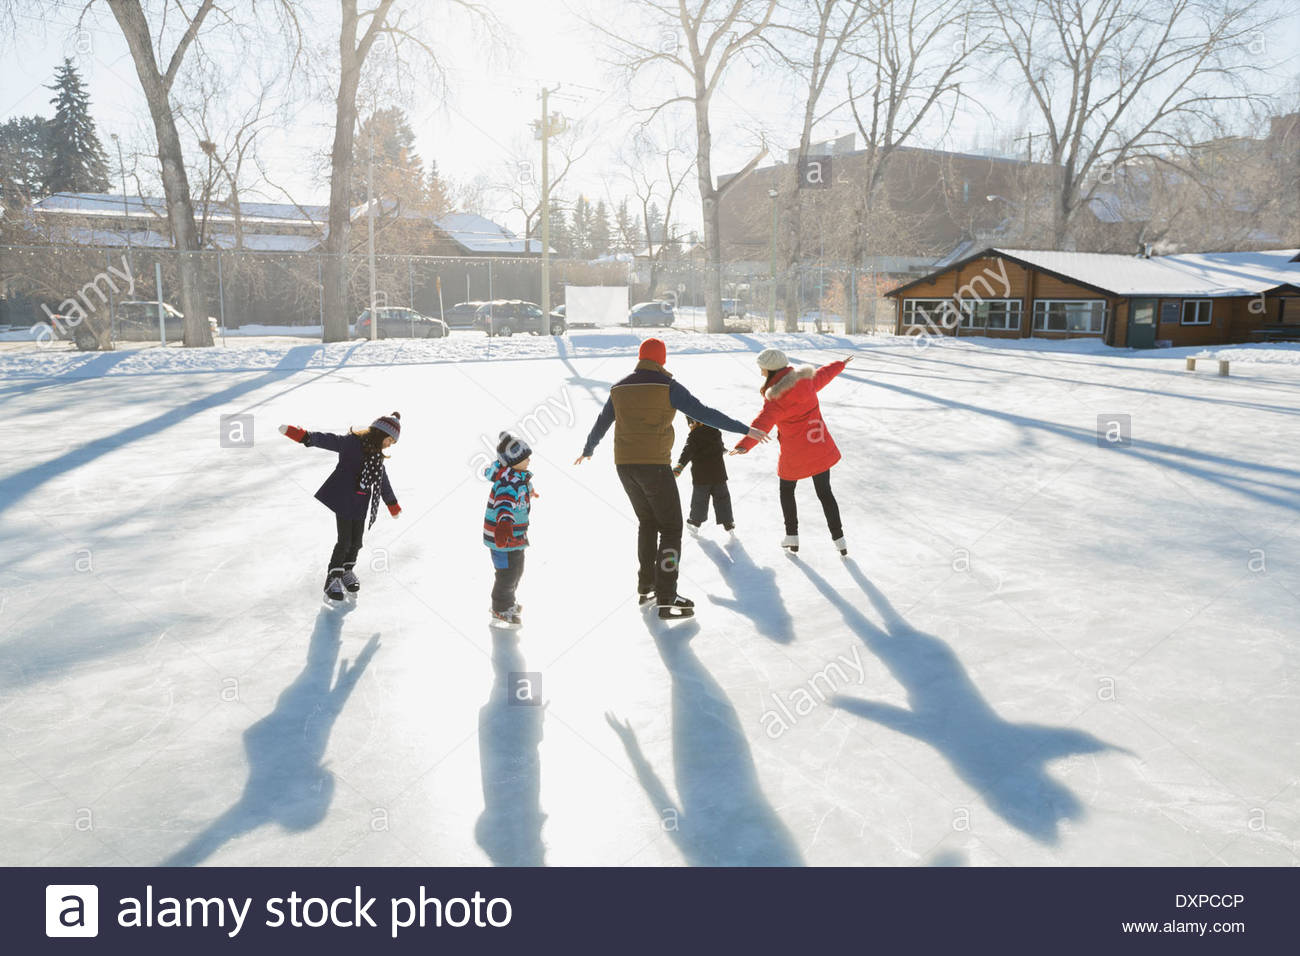 Family ice-skating on outdoor rink together - Stock Image